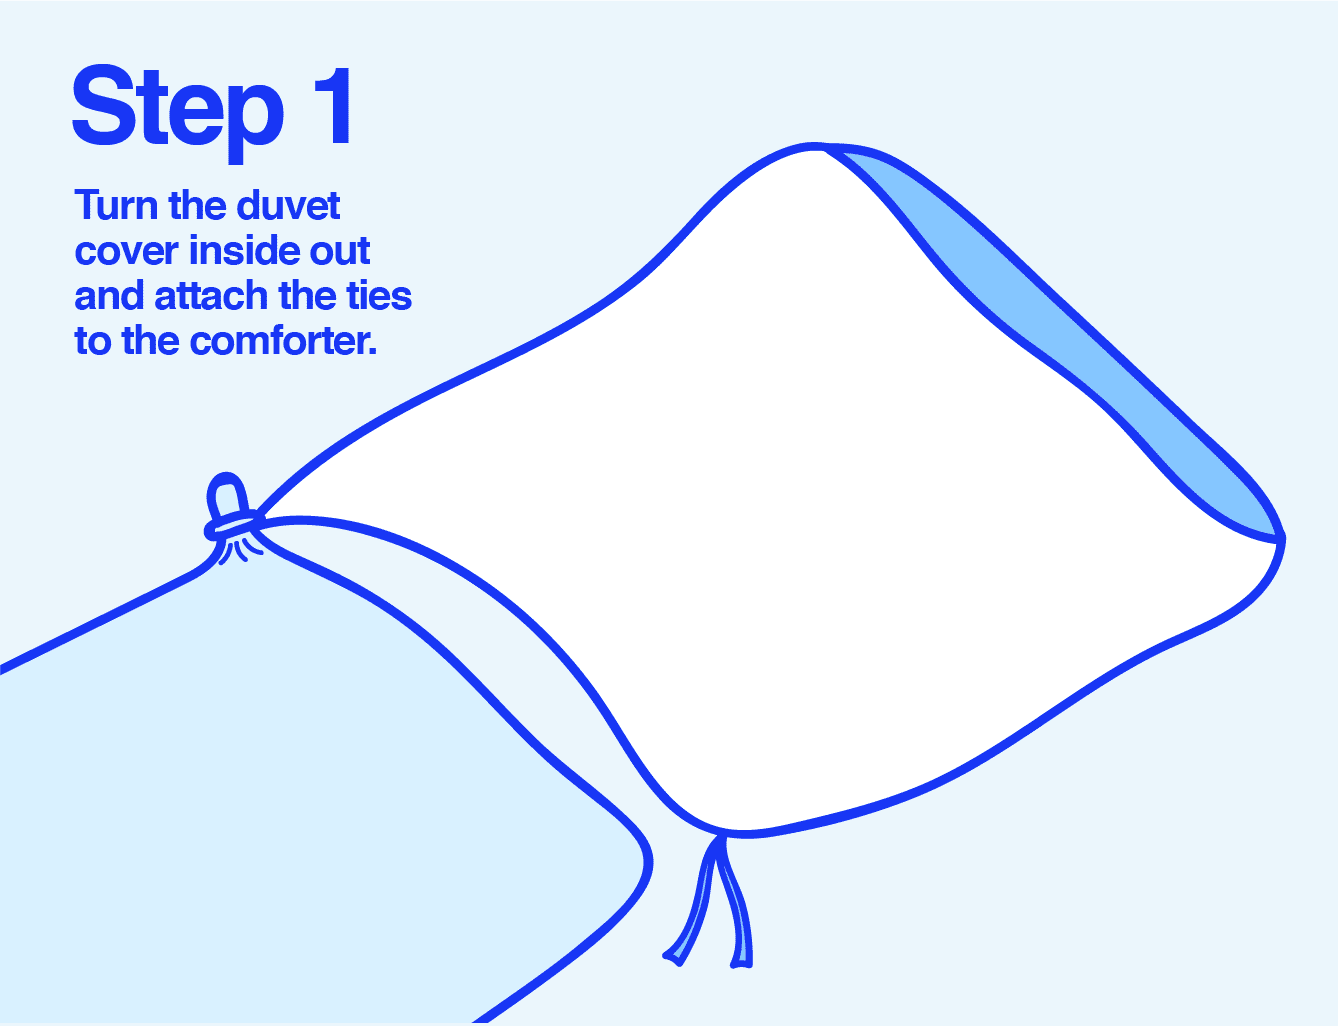 Infographic of duvet cover